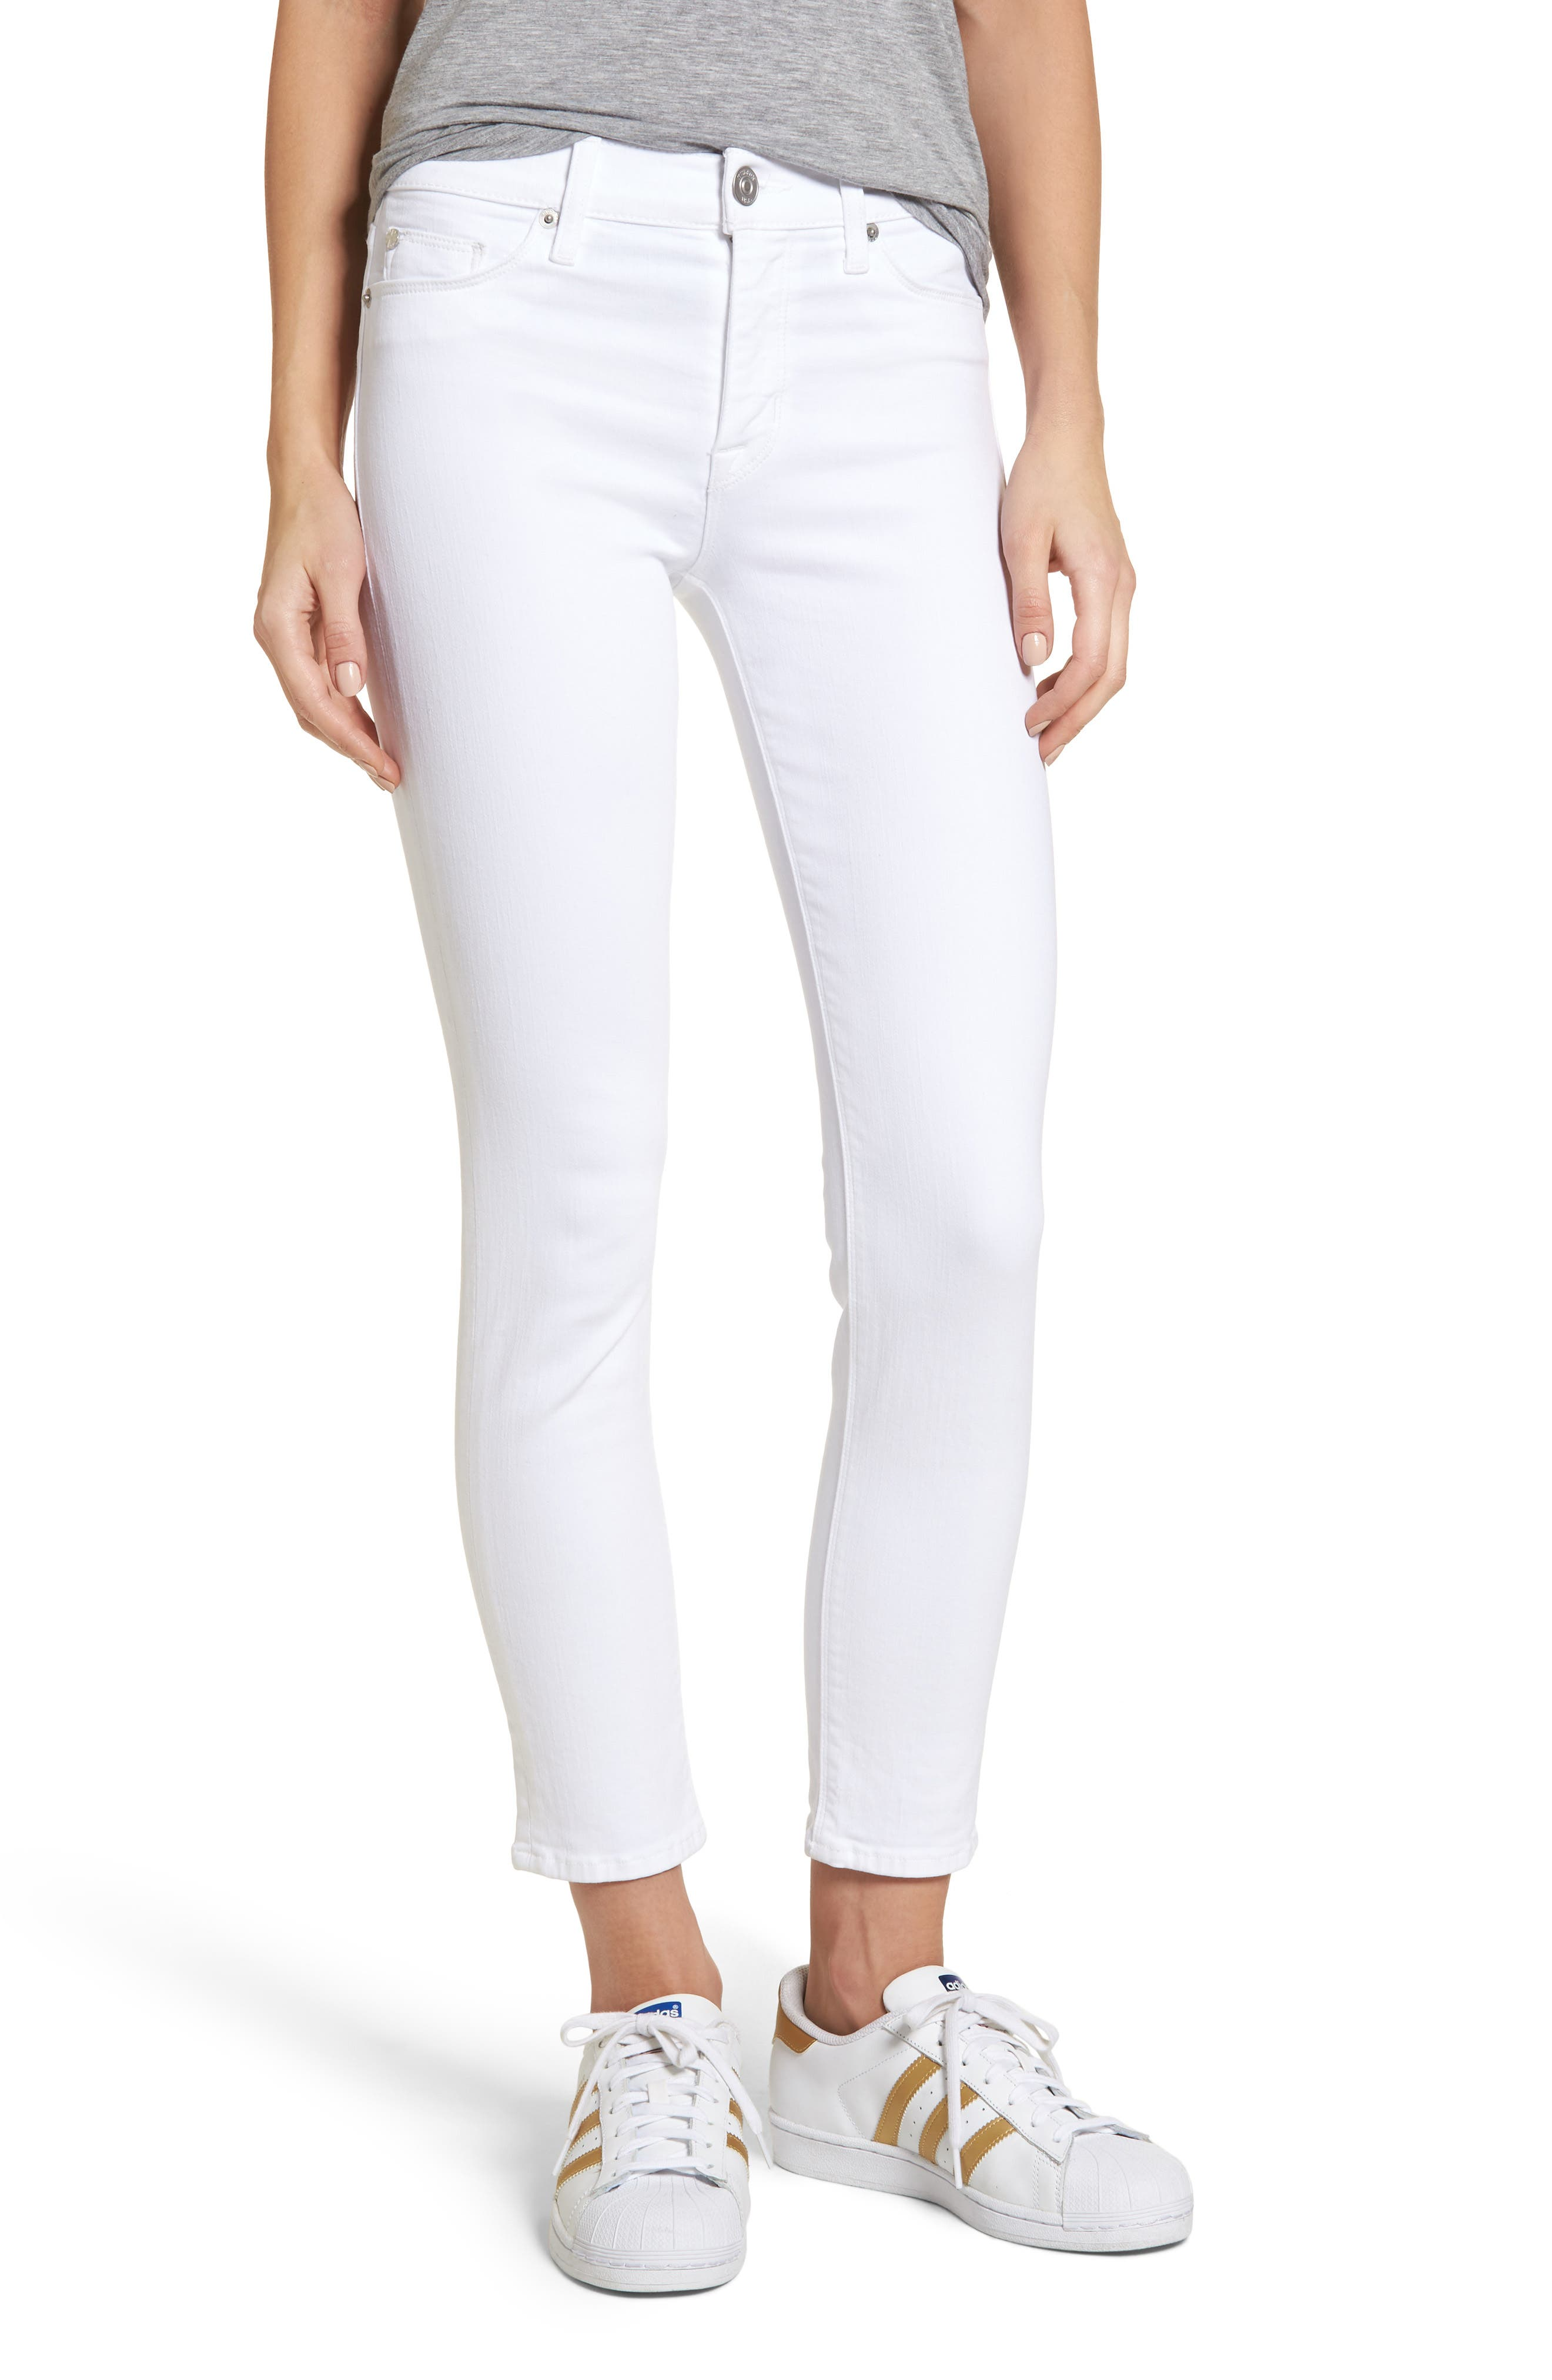 Tally Ankle Skinny Jeans,                         Main,                         color, Optical White